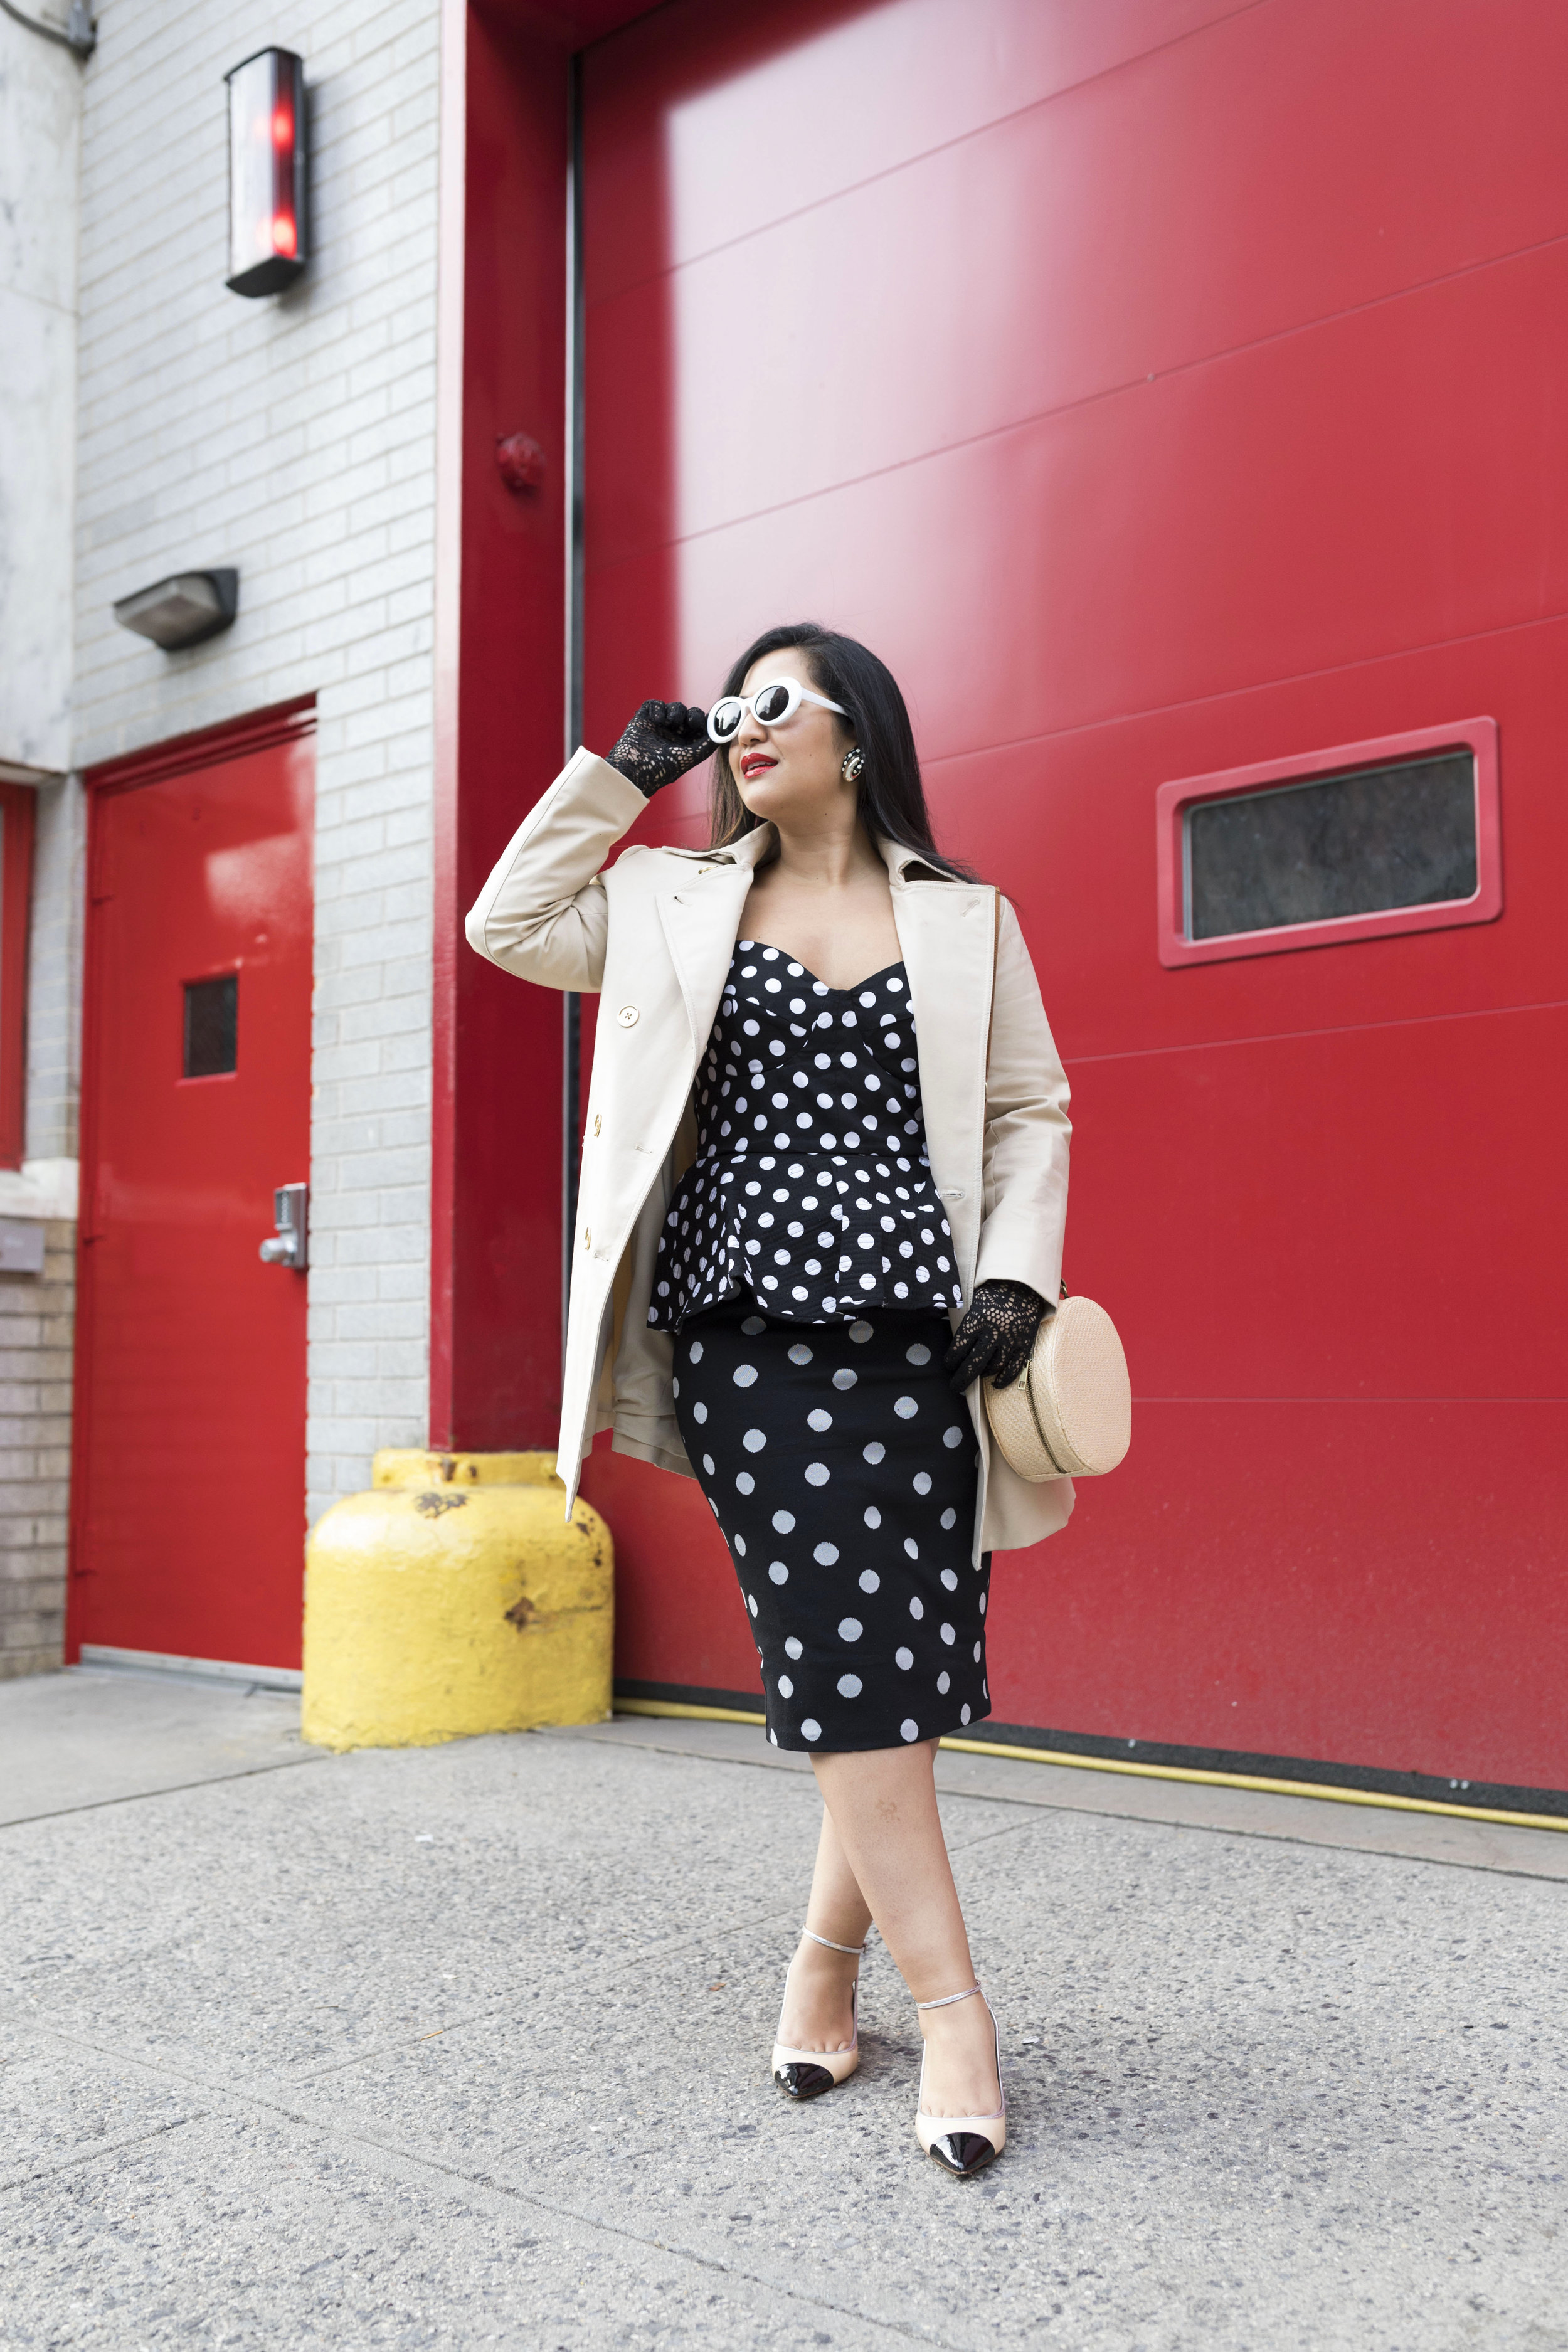 Krity S x Polka Dots x Spring Outfit1.jpg